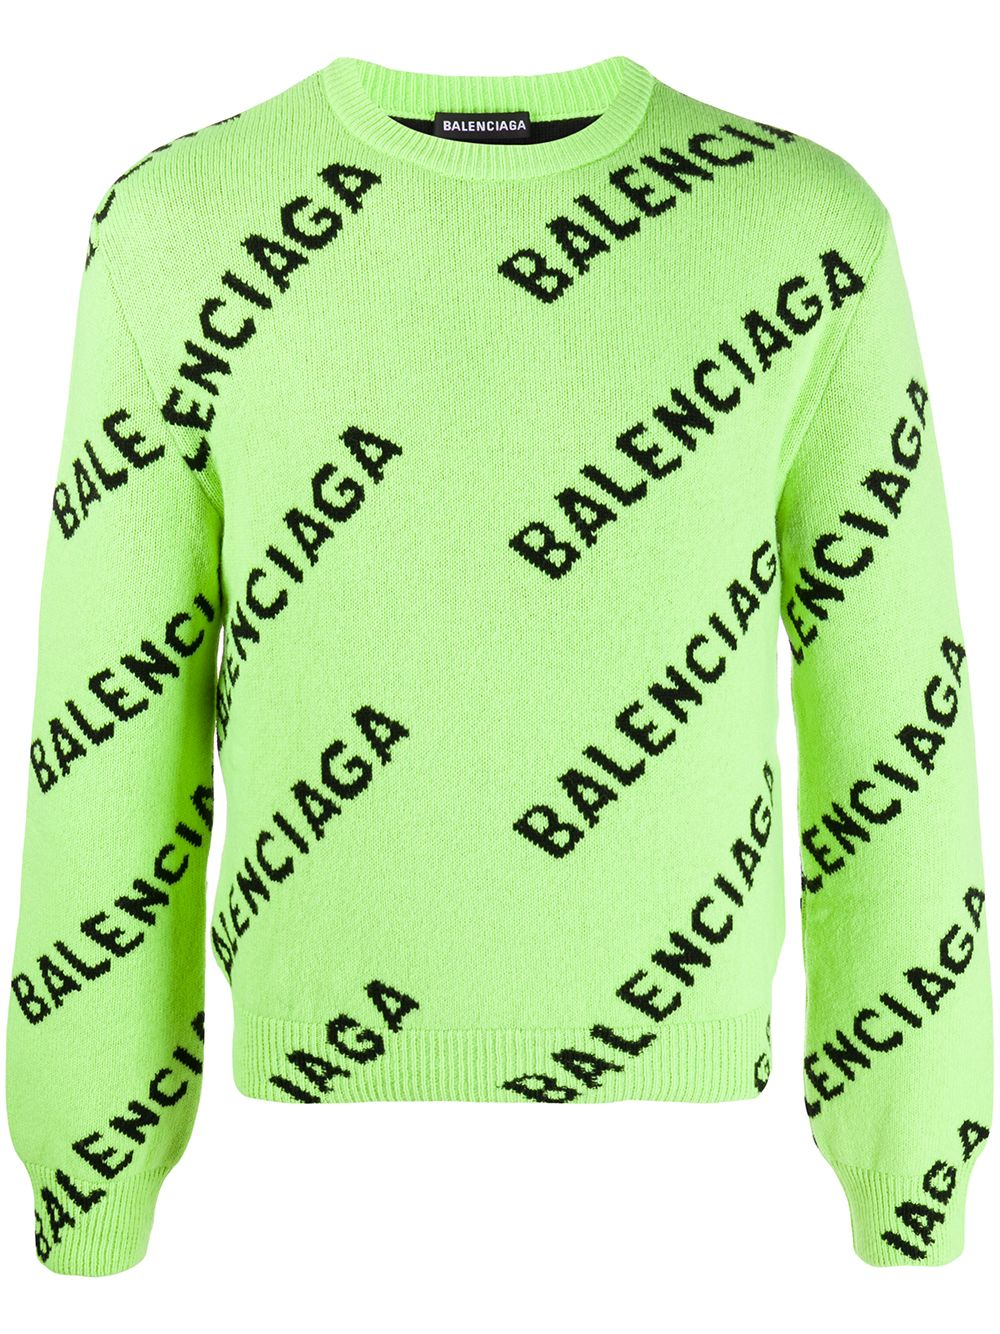 Neon green and black wool blend Balenciaga lettering logo intarsia jumper  BALENCIAGA |  | 621019-T15673532